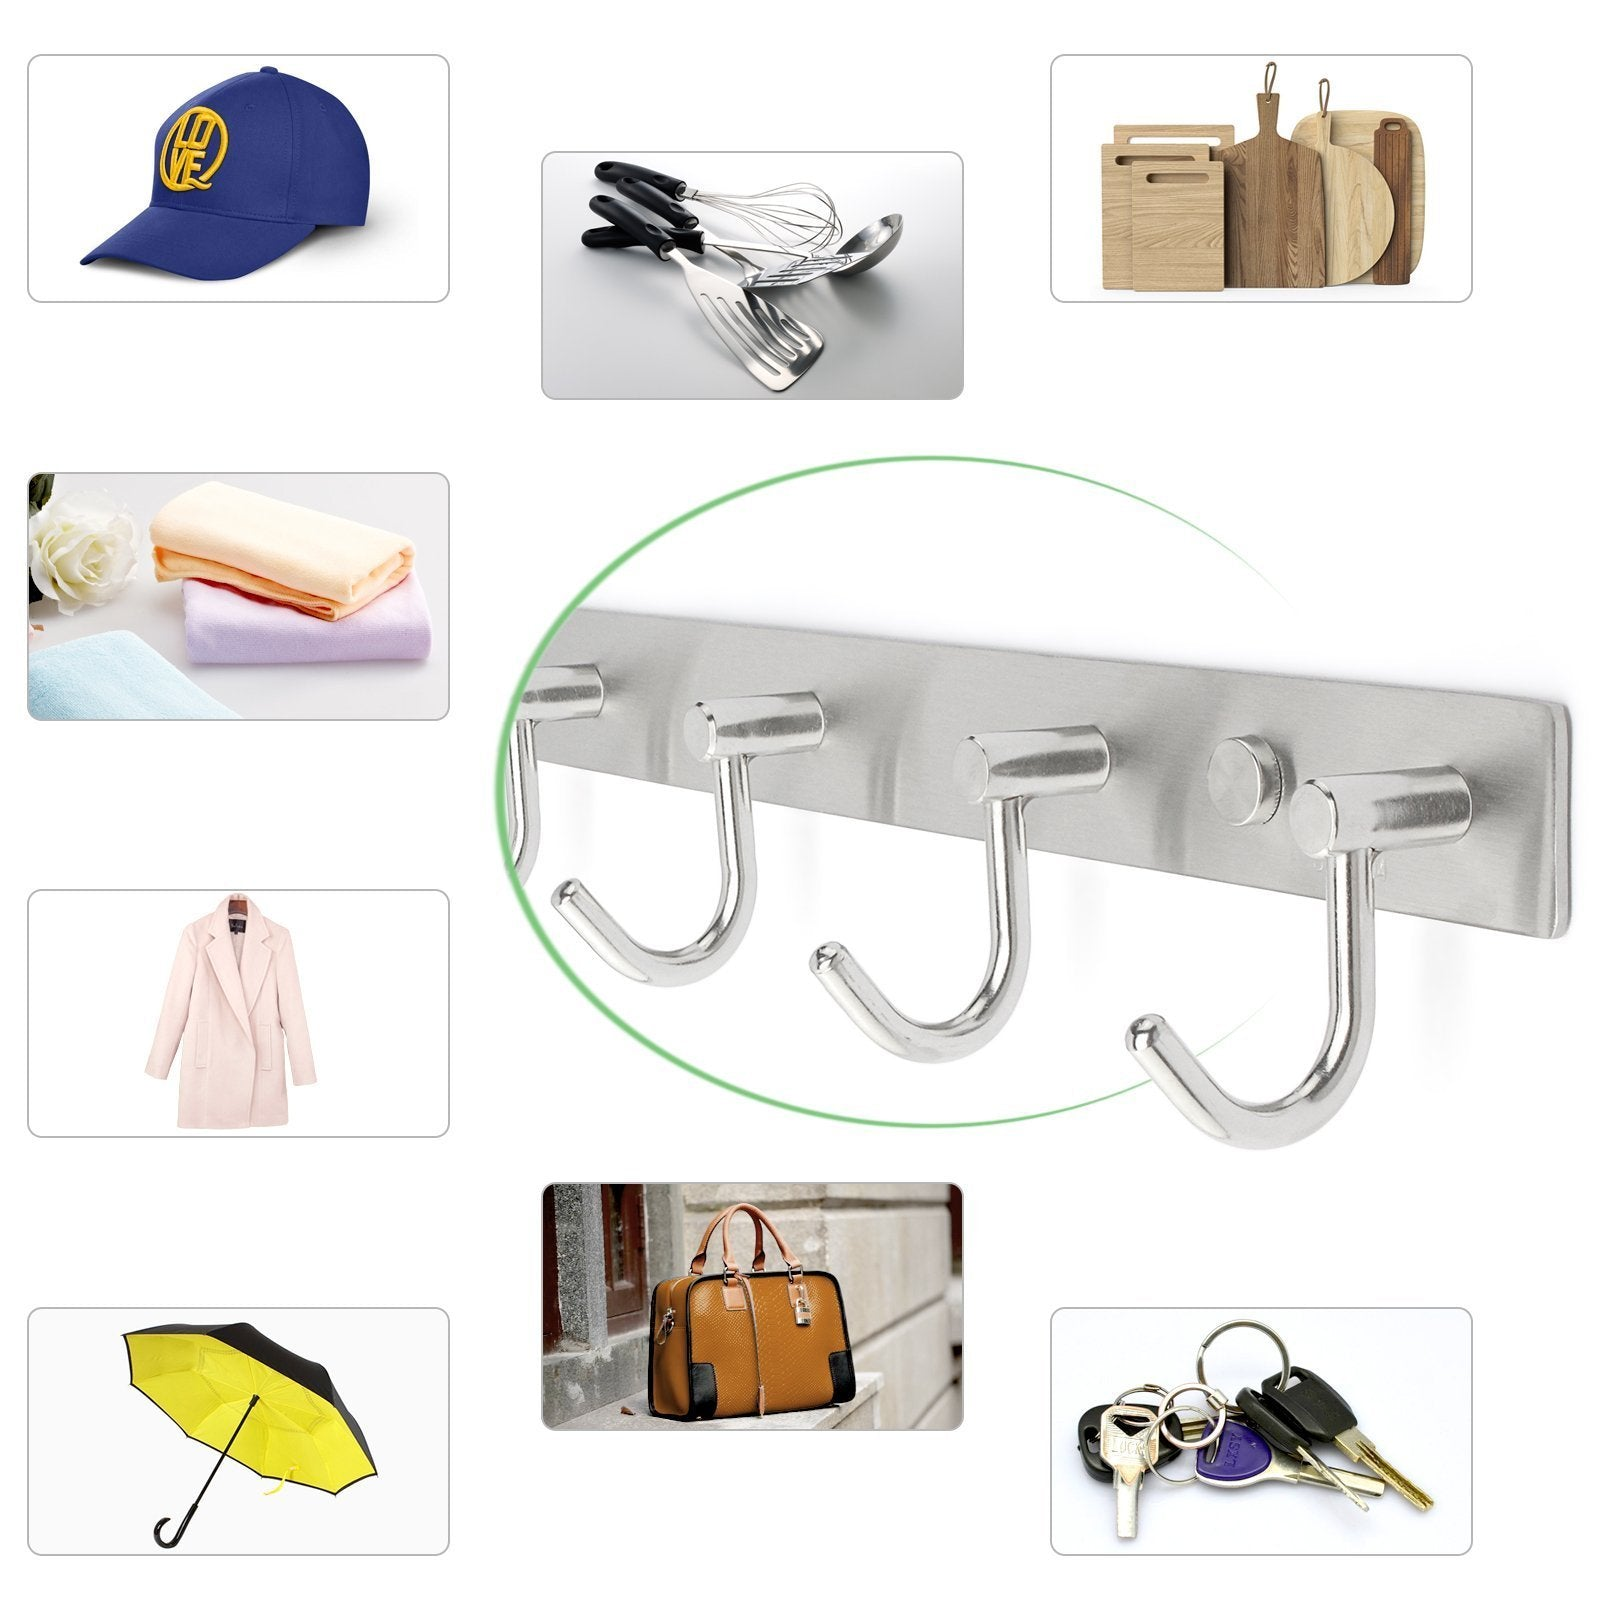 Storage arks royal wall coat hooks solid stainless steel hanger rail durable hook rack for clothes bags or keys brushed stainless steel finish 8 hooks